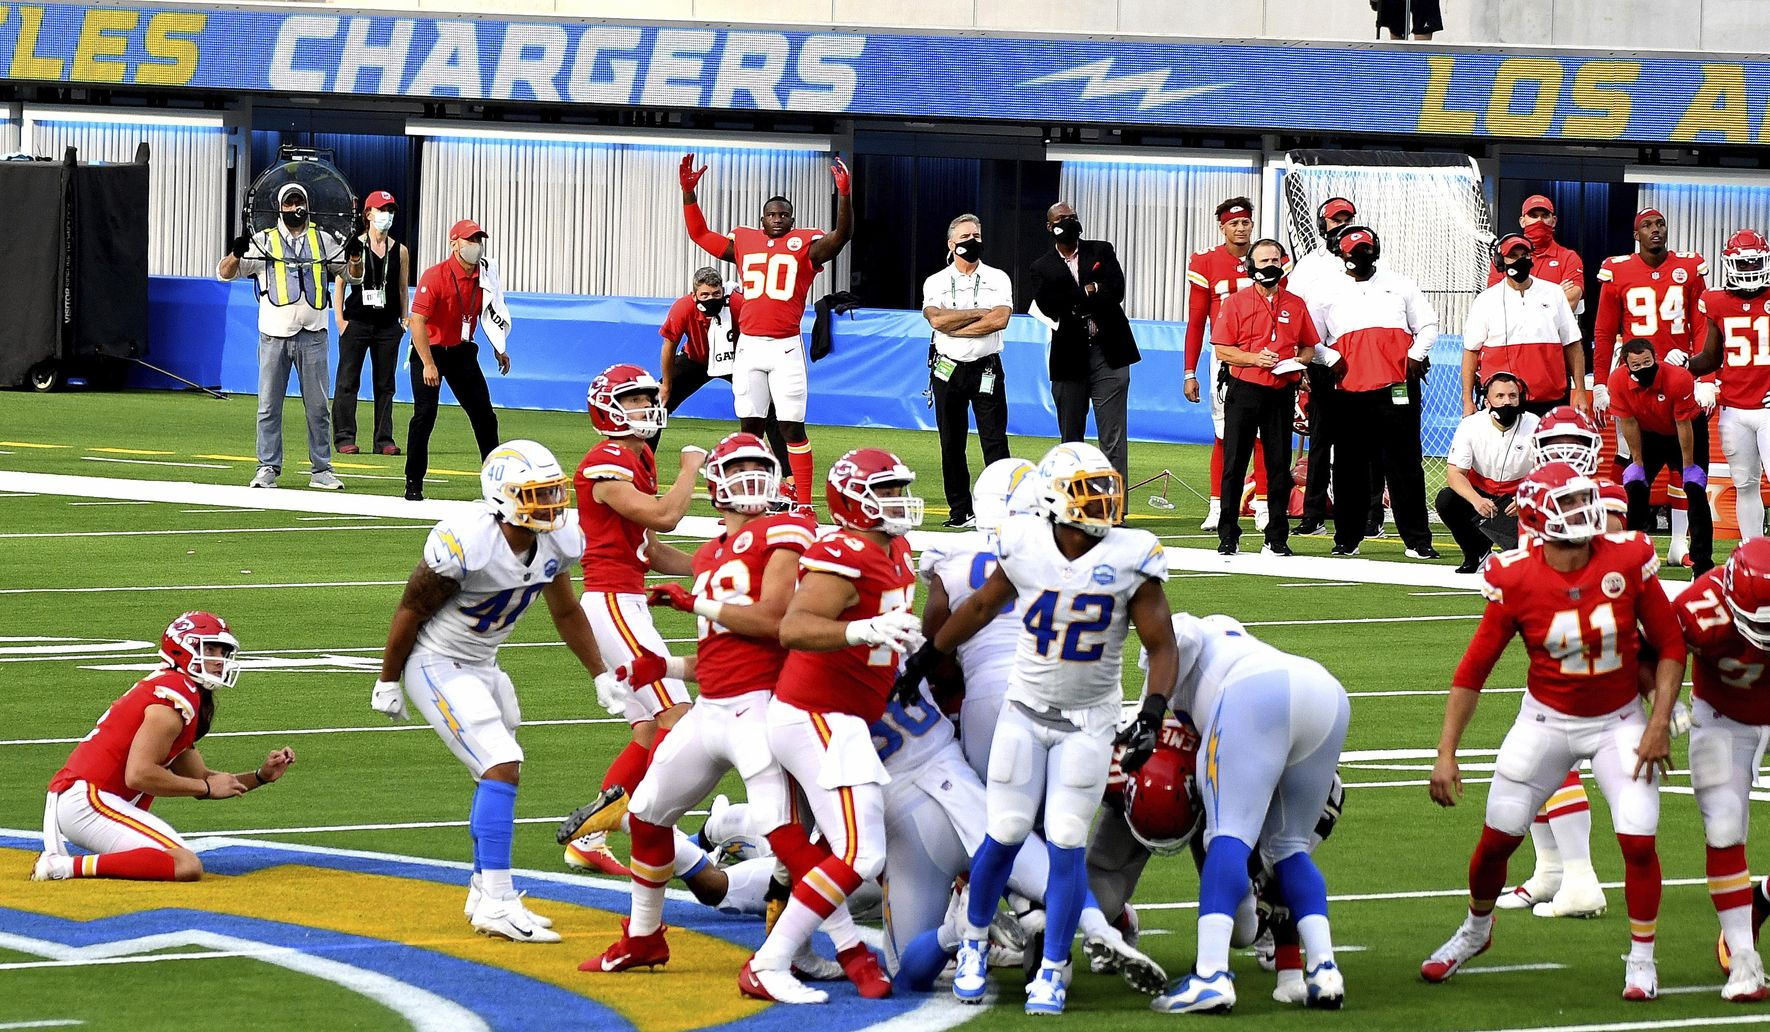 Chiefs_chargers_football_78691_c80-0-3697-2109_s1770x1032